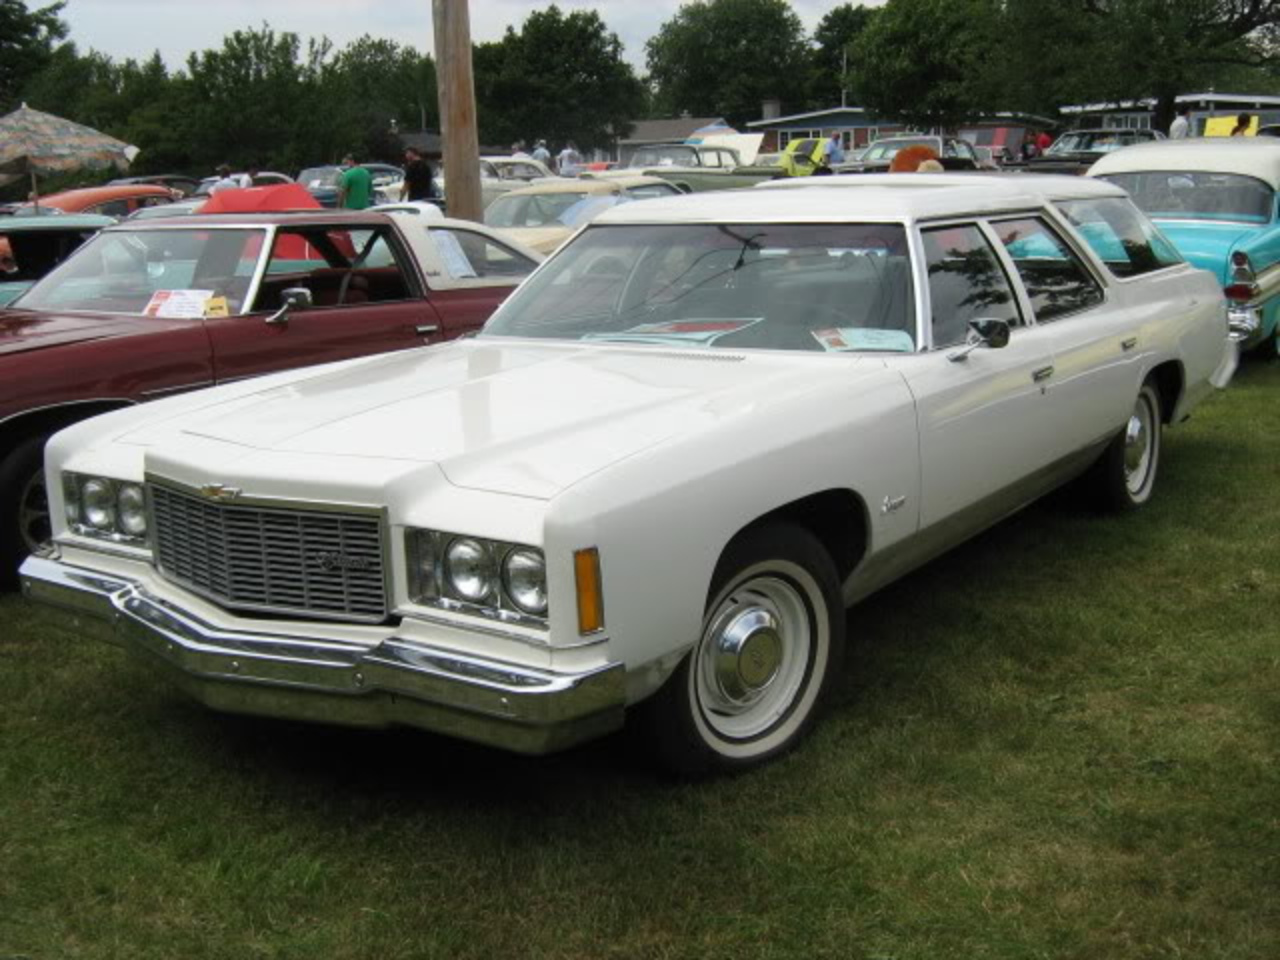 1975 Chevrolet Biscayne Wagon | Flickr - Photo Sharing!